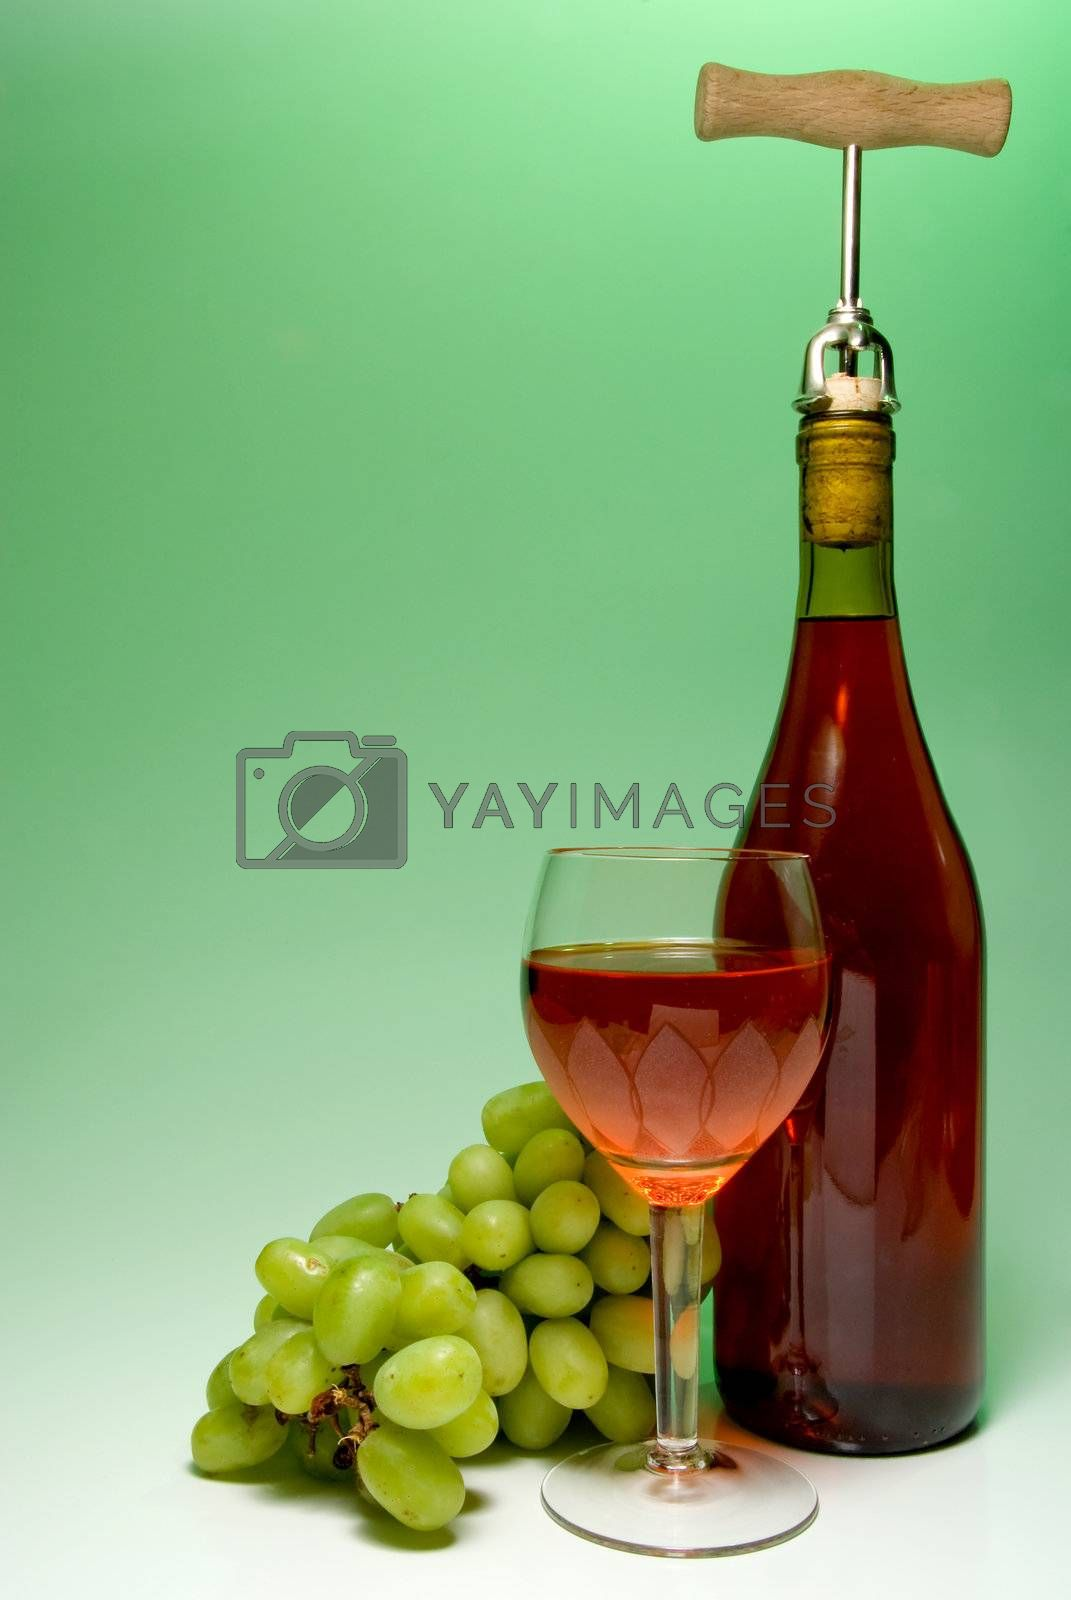 A glass of wine beside grapes and a bottle.